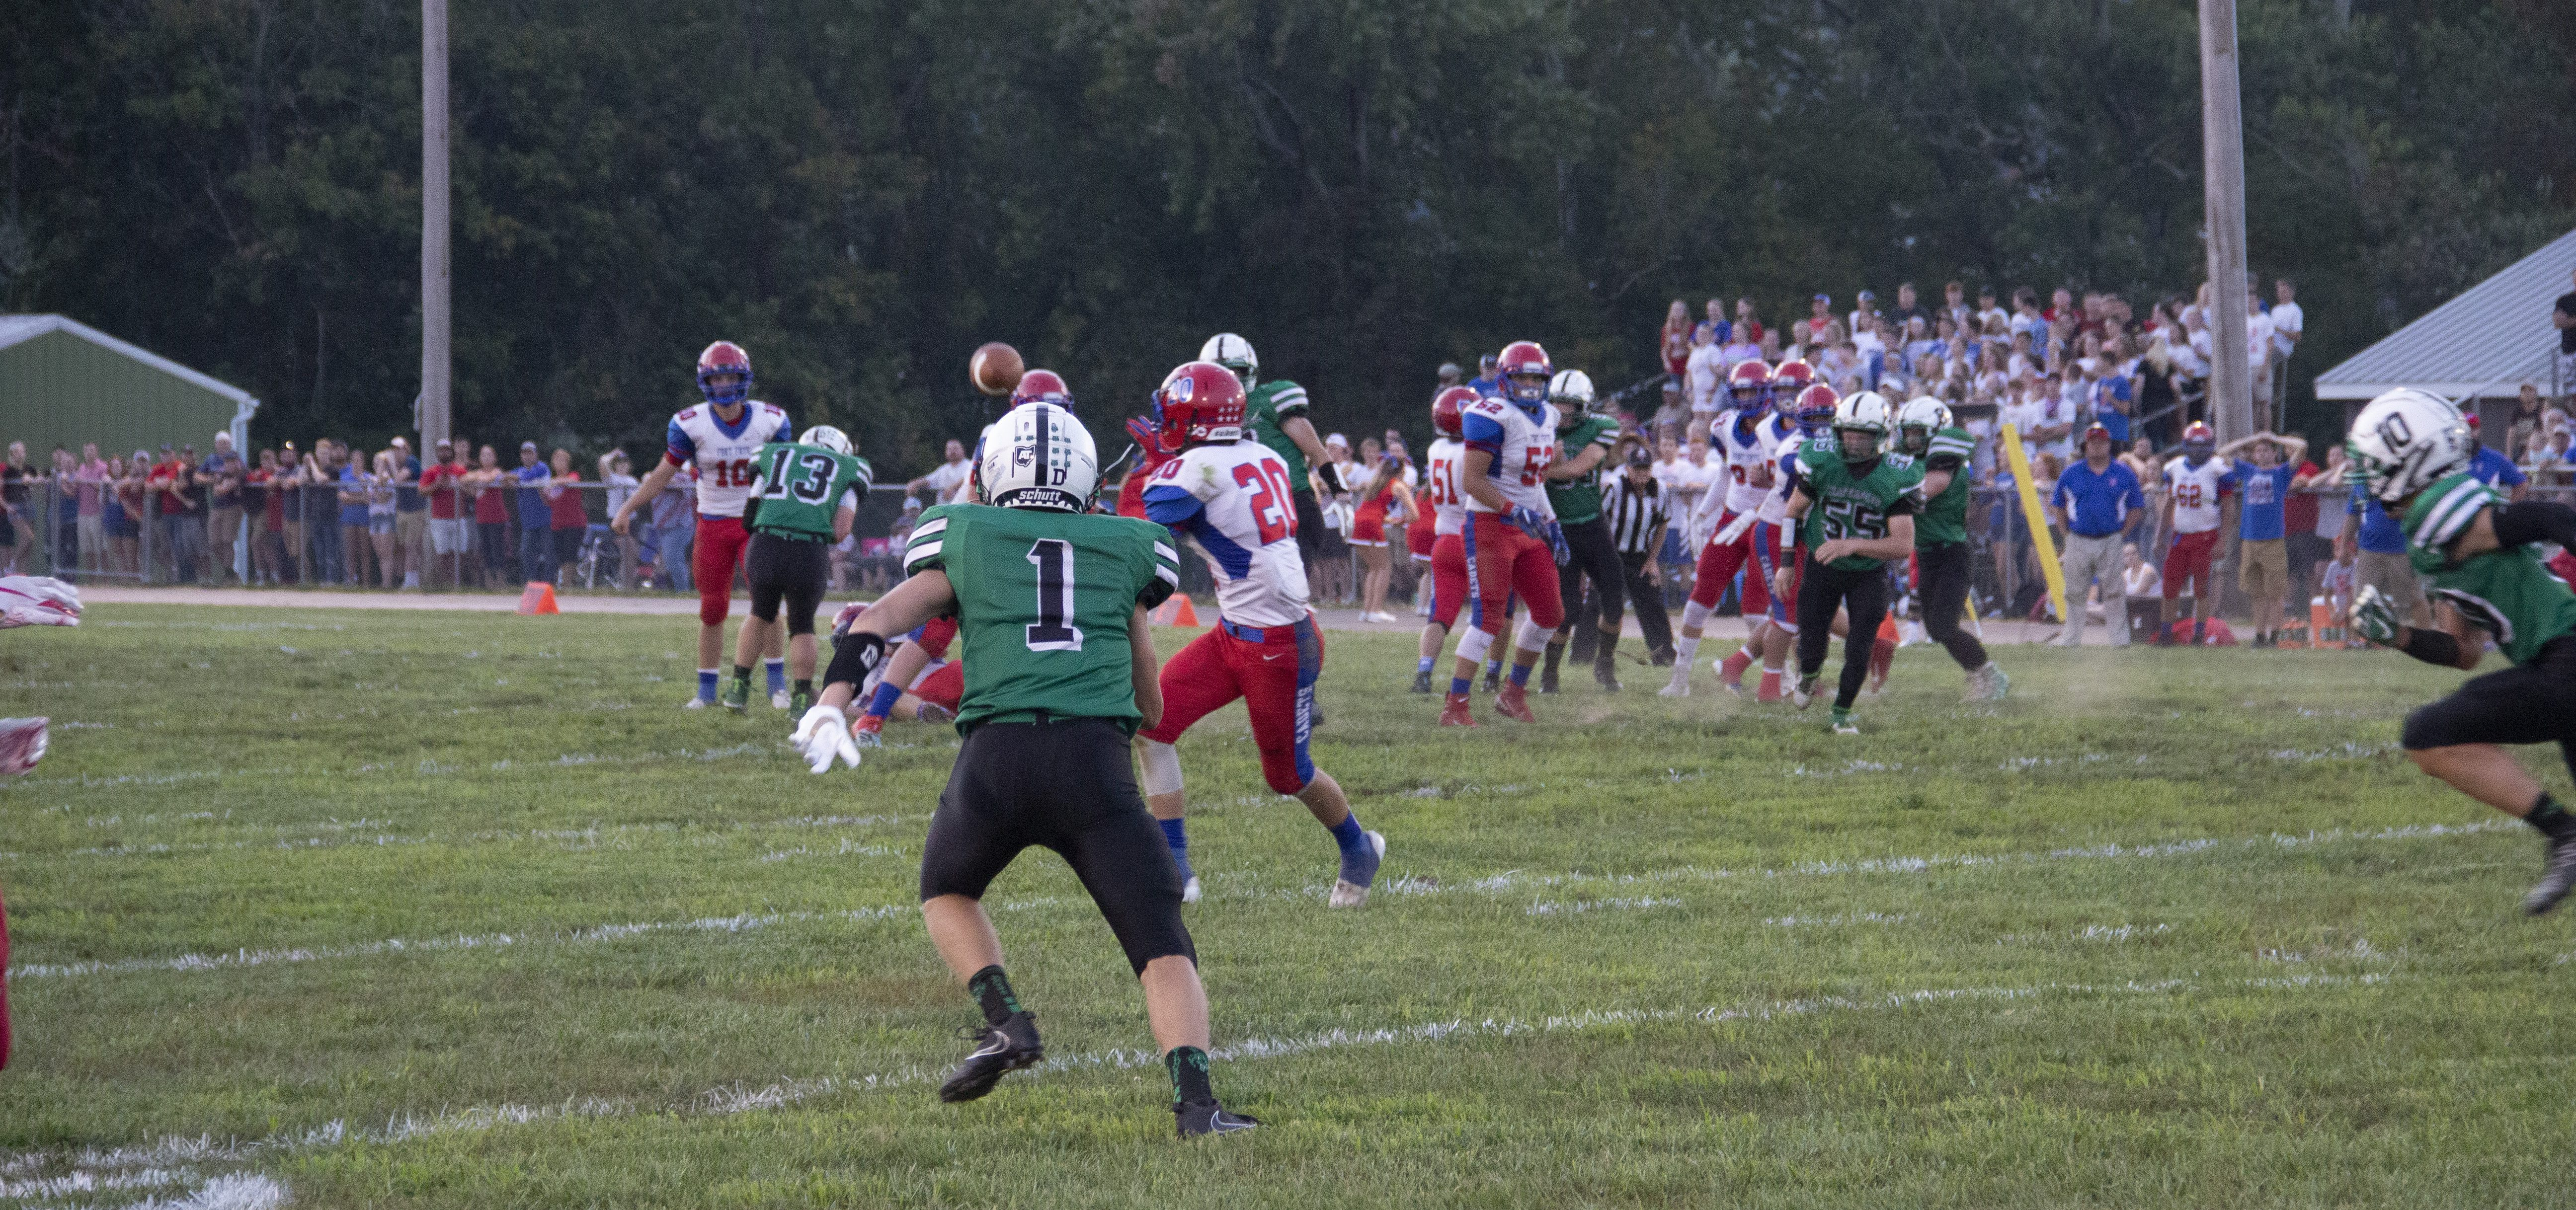 Waterford player watches Fort Frye player receive a pass